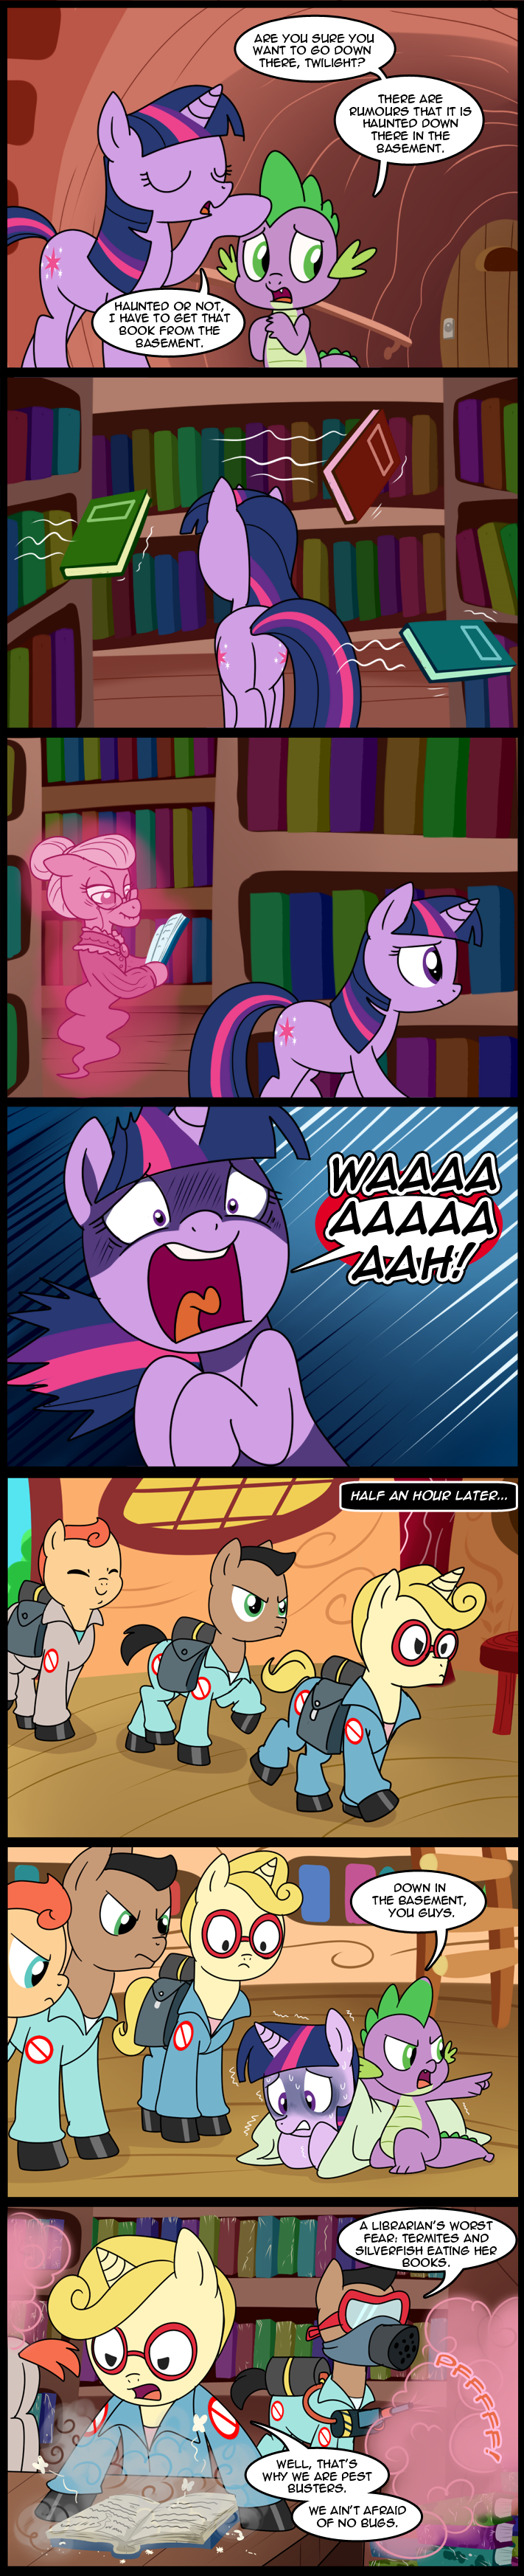 MLP: Down in the basement (Commissioned) by tan575